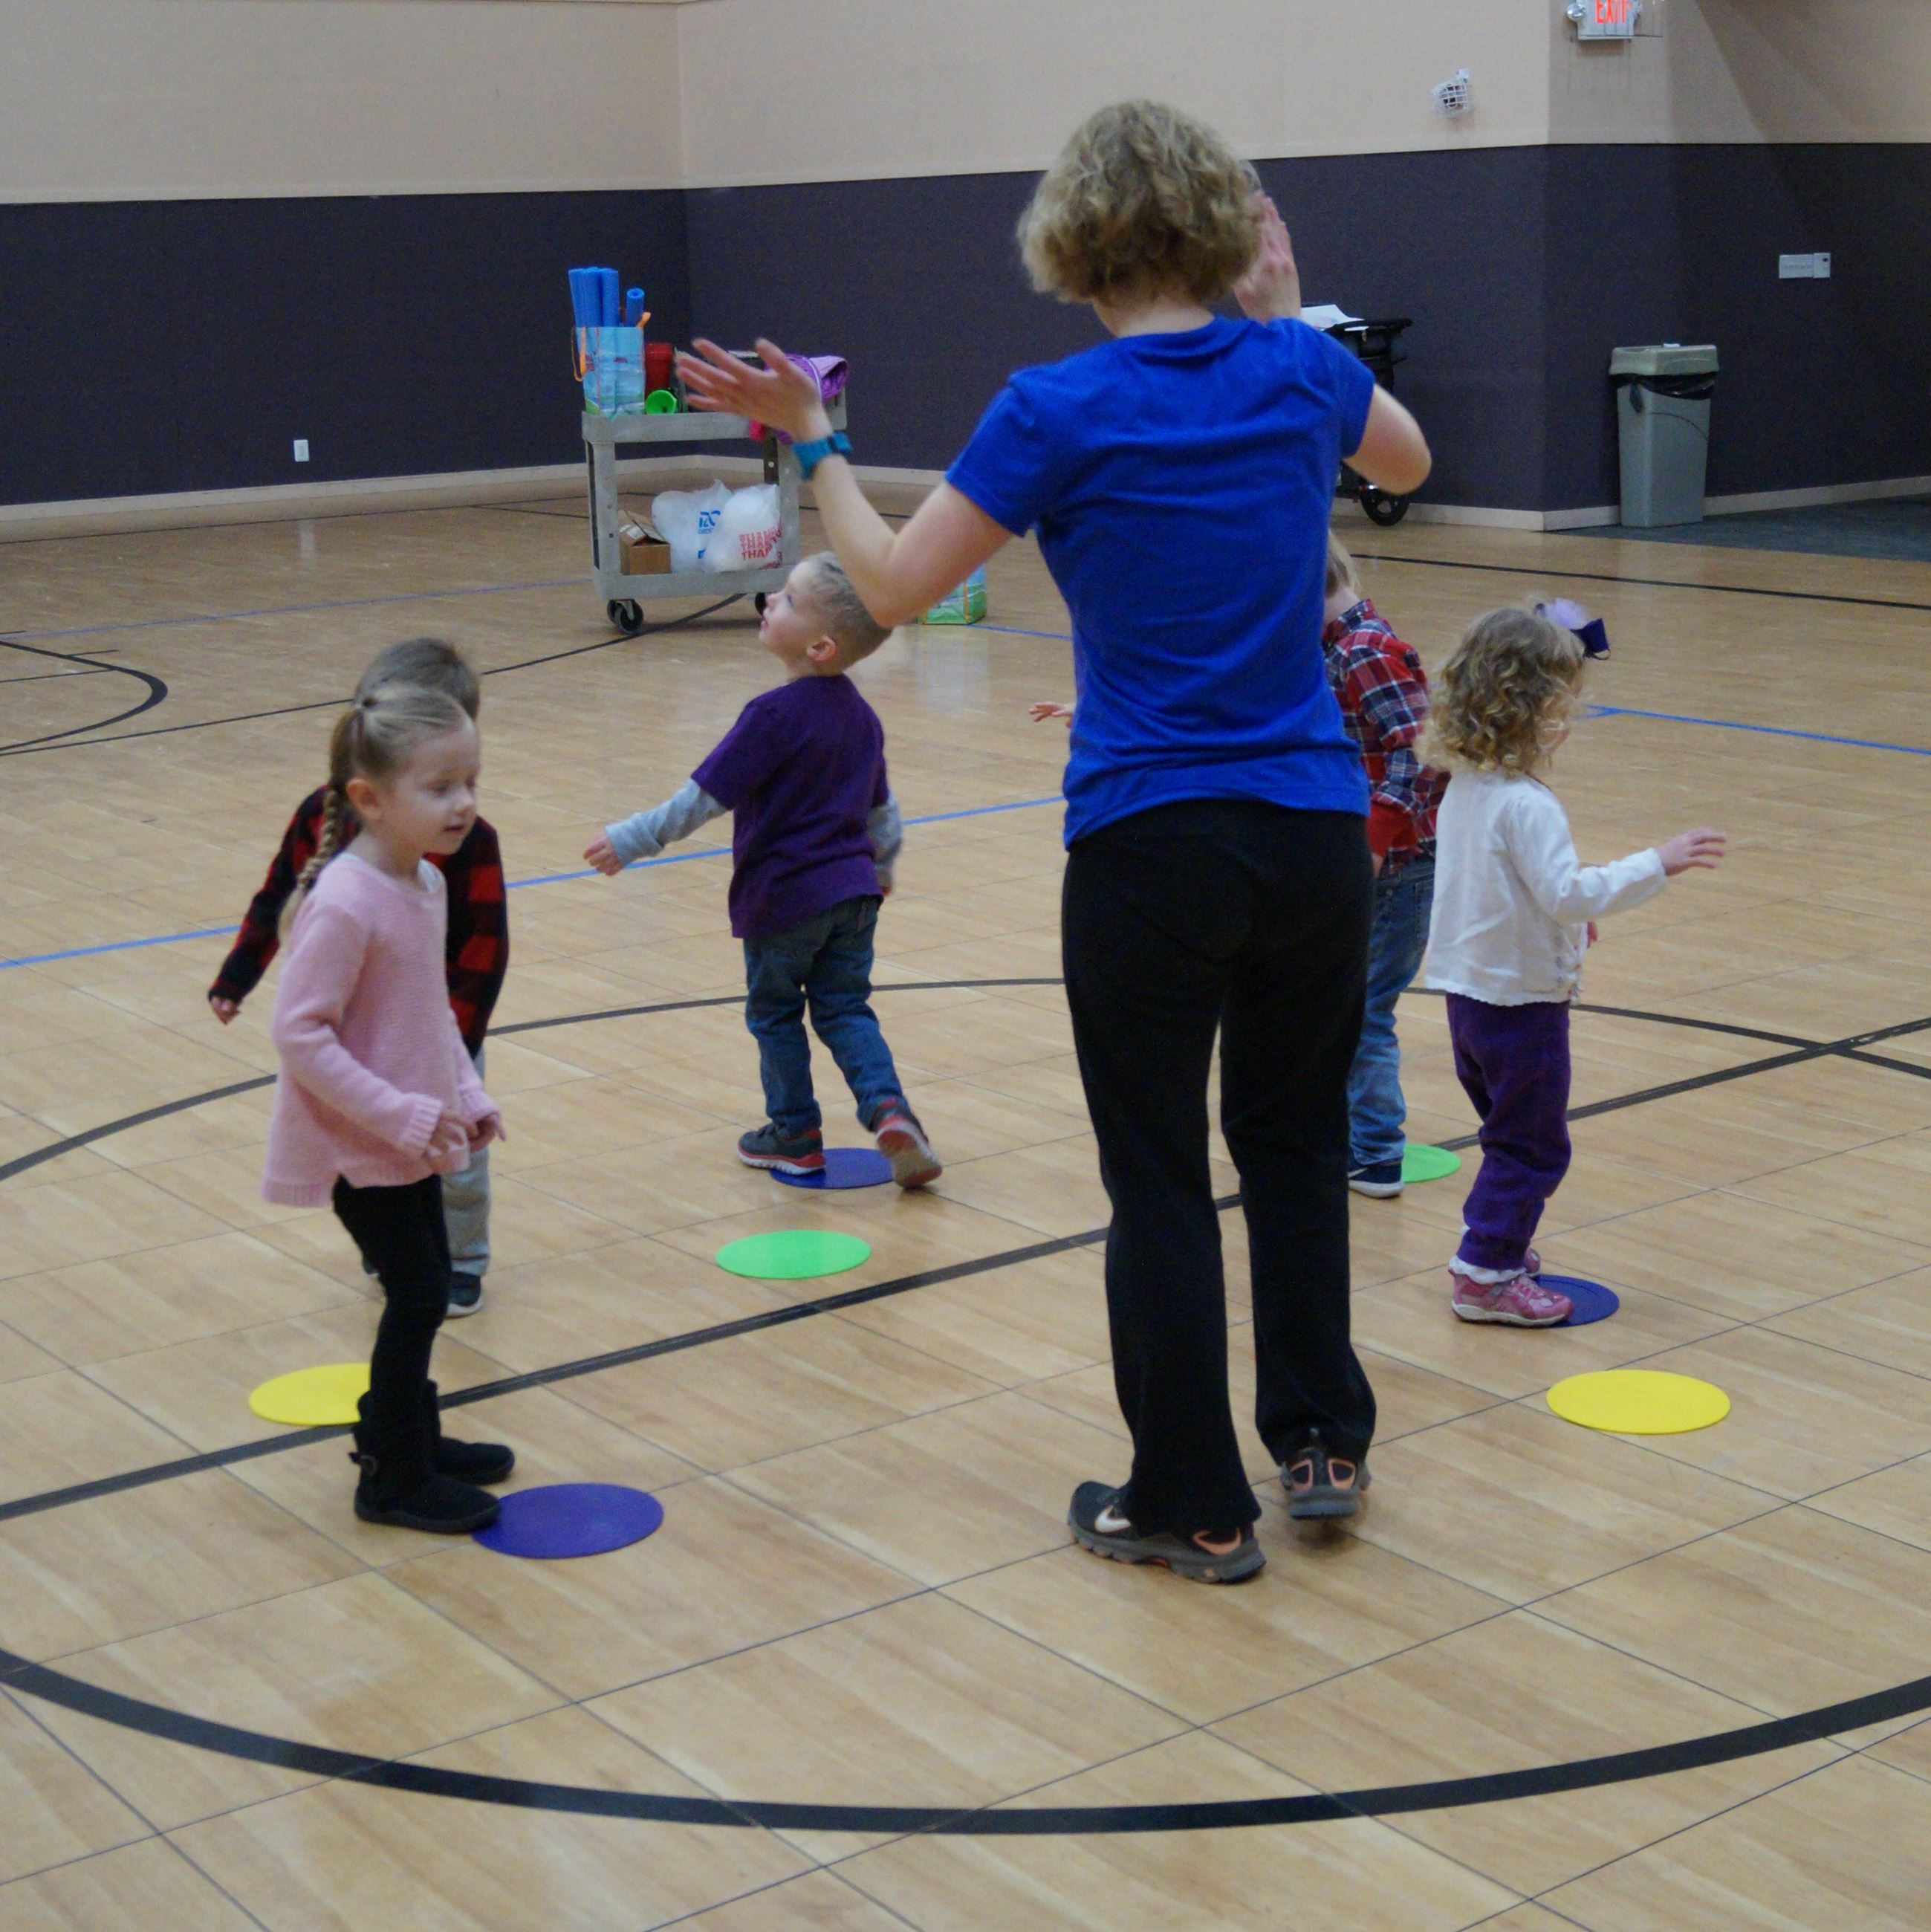 Preschoolers play games in a gymnasium